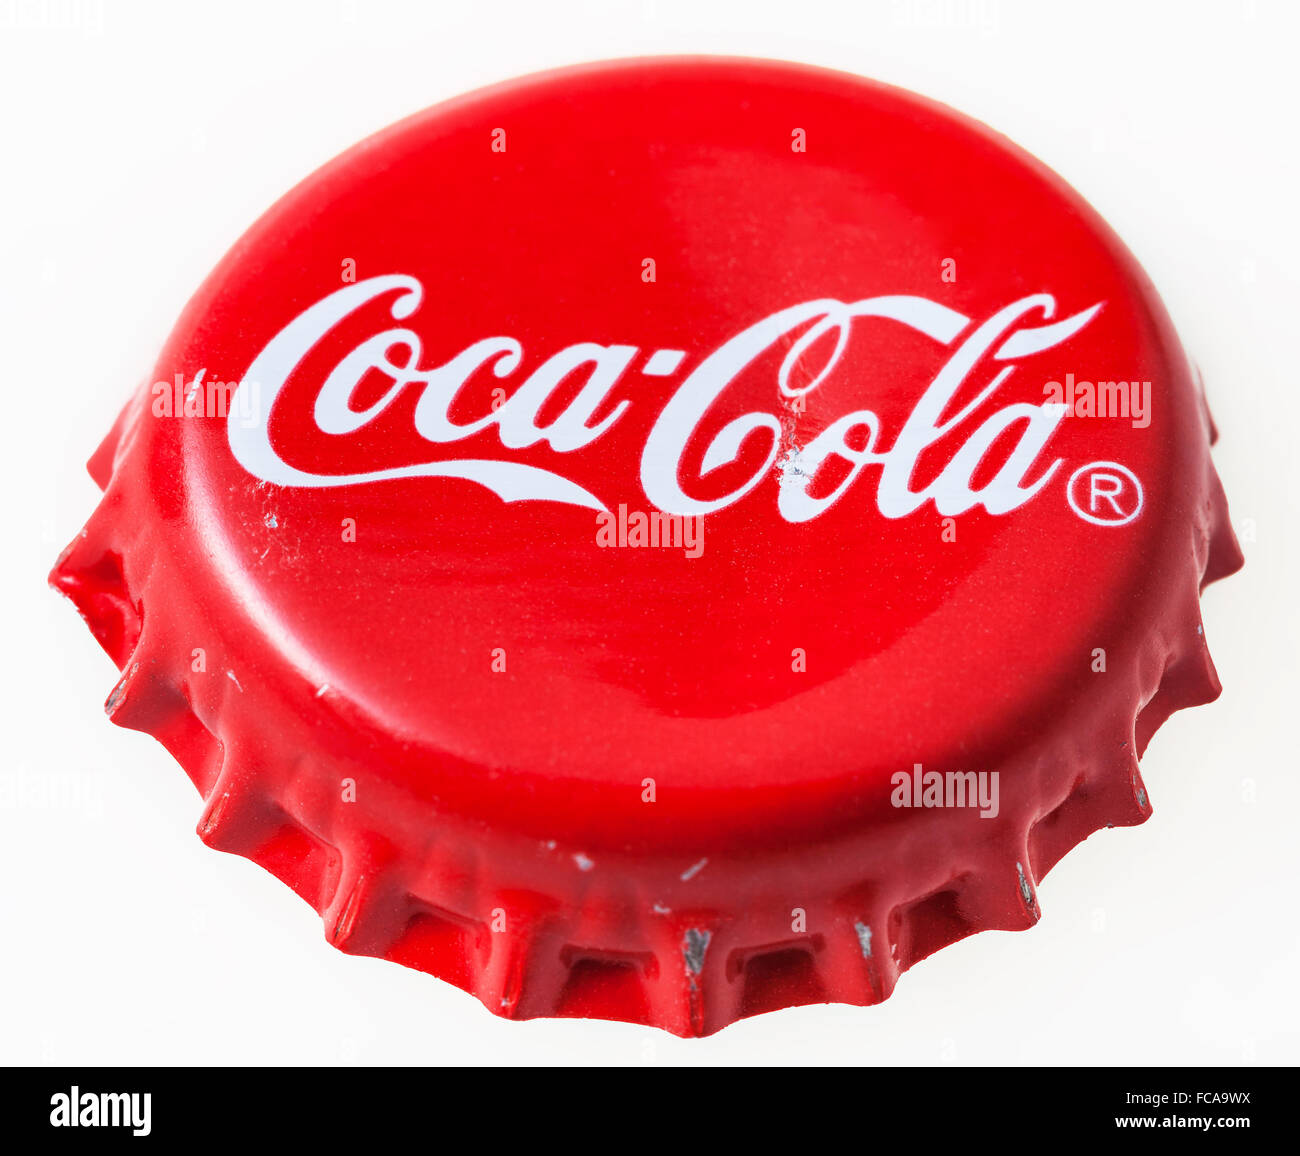 MOSCOW, RUSSIA - DECEMBER 12, 2105: Used red crown cap from the bottle of Coca-Cola soft drink. The Coca-Cola Company - Stock Image